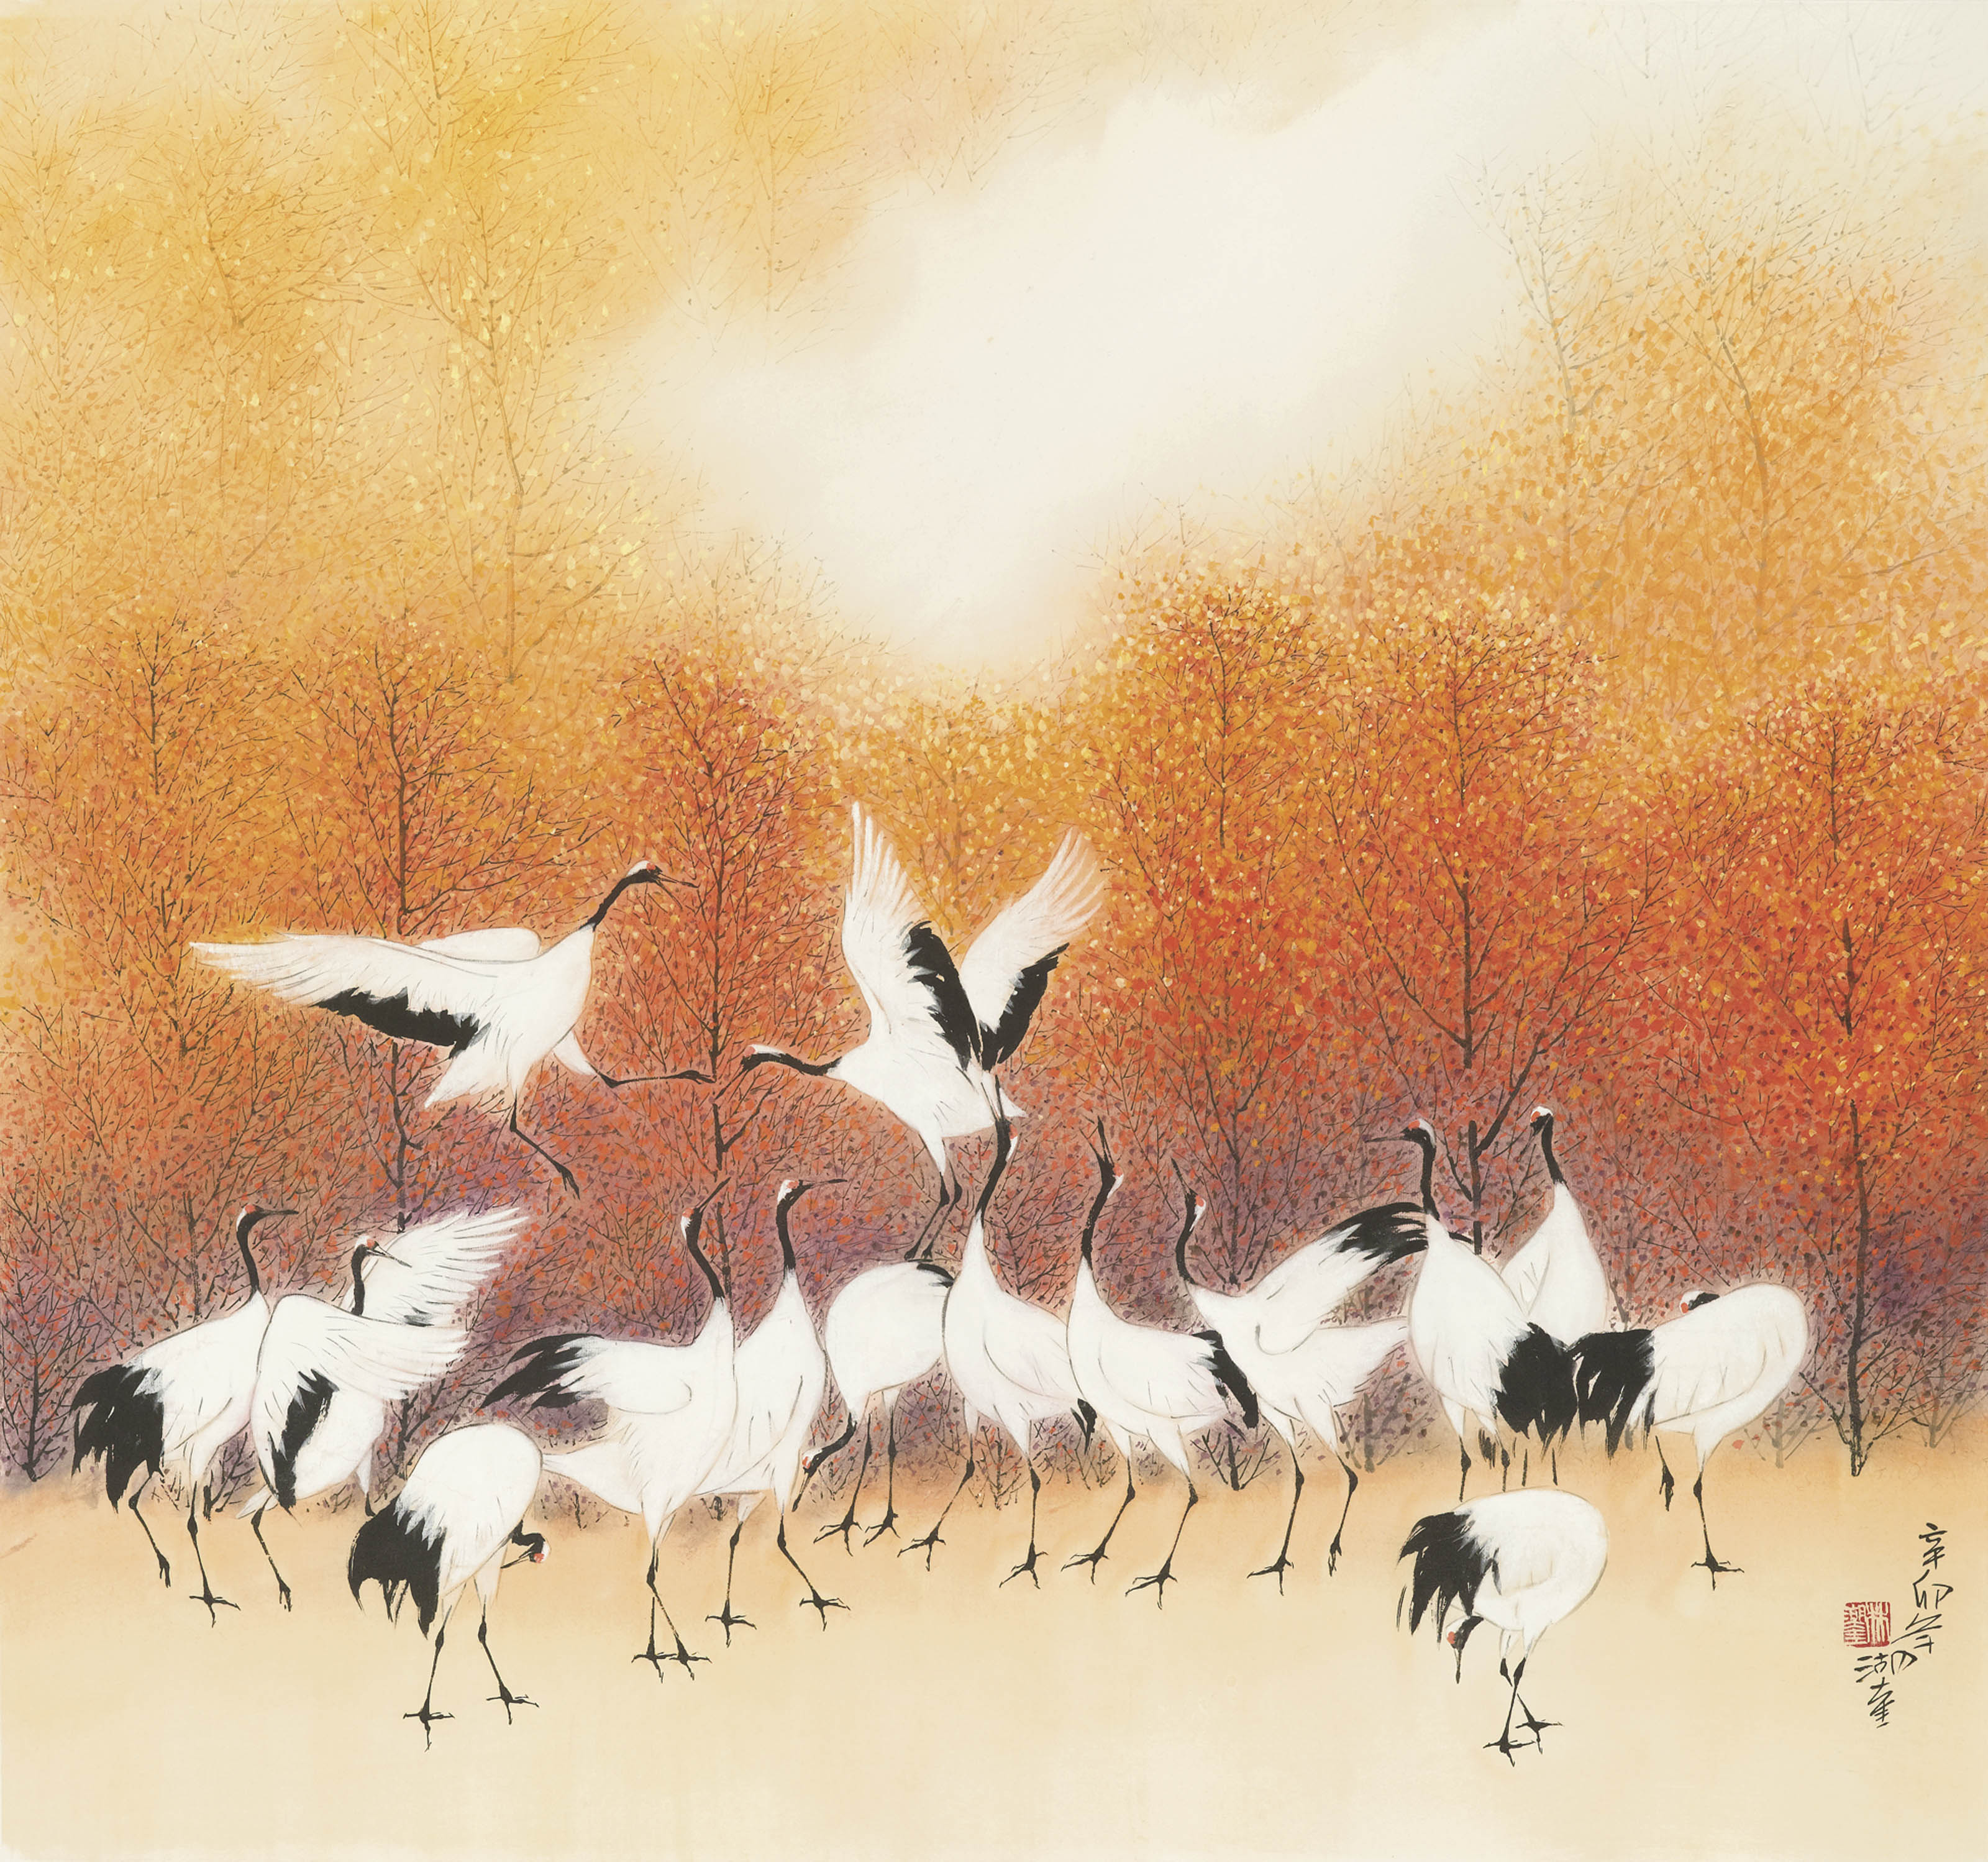 Cranes in an Autumn Forest